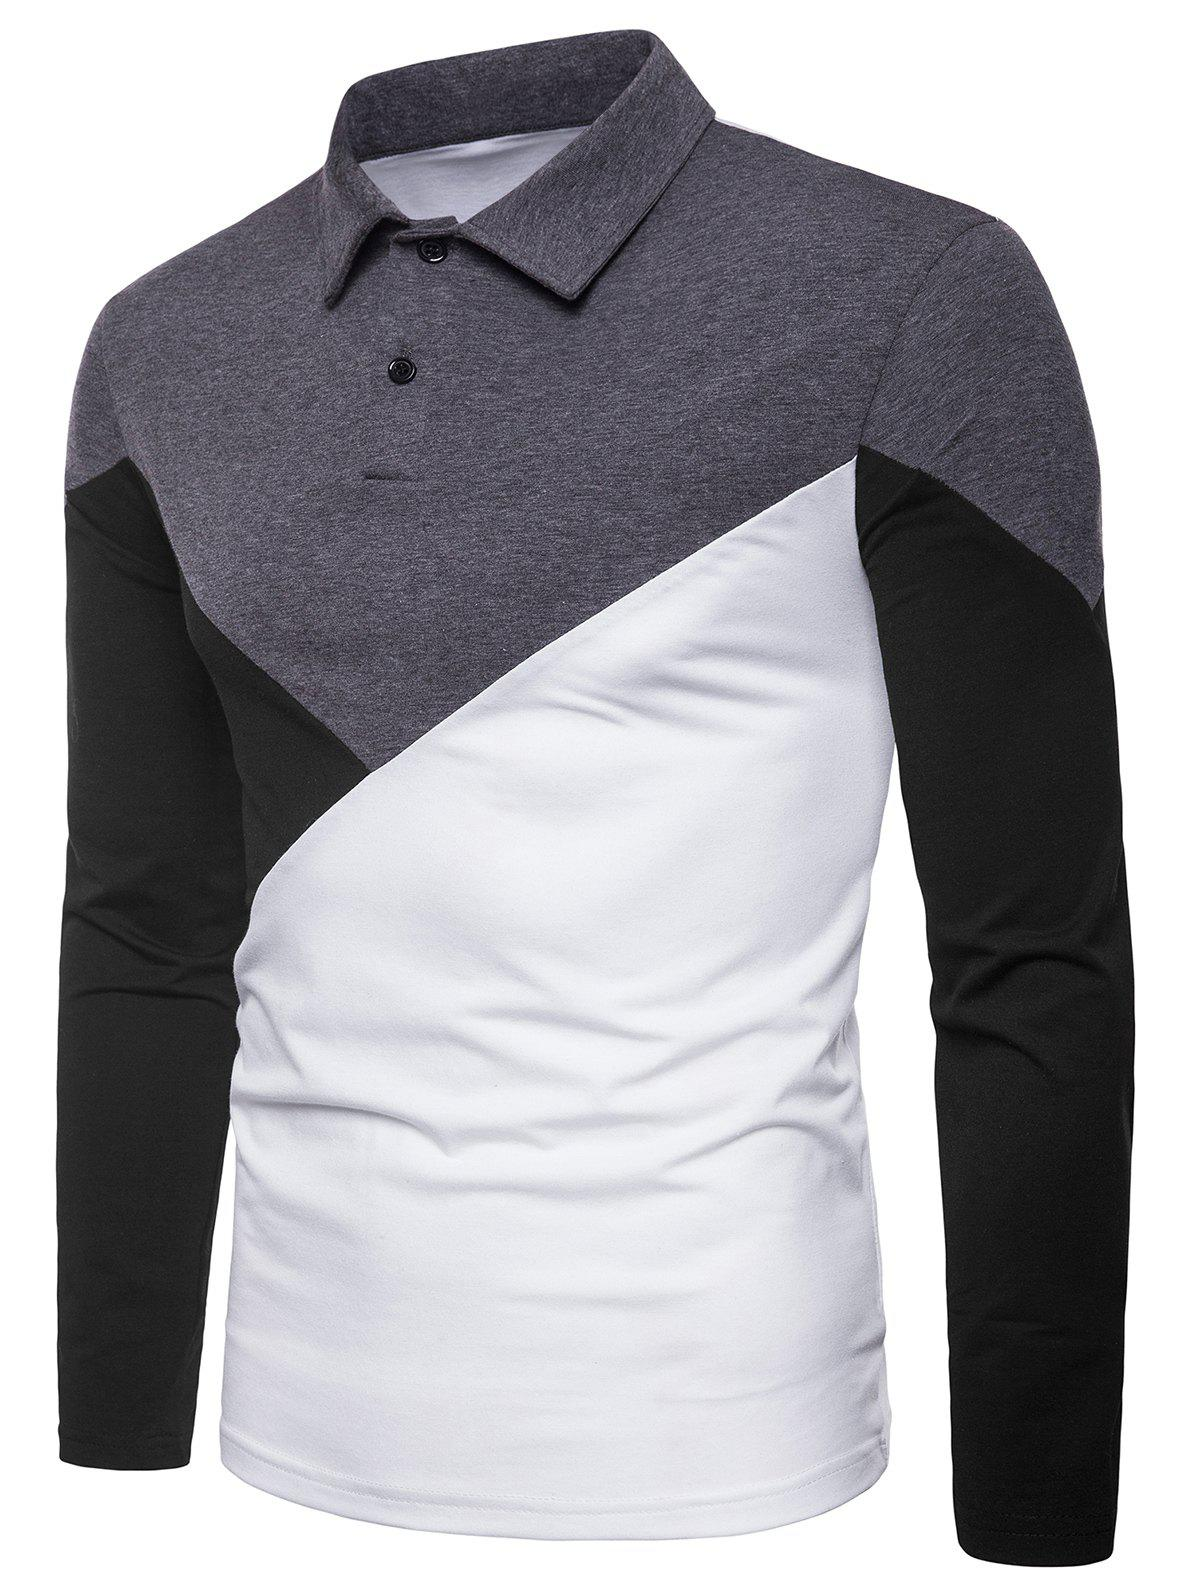 Hot Patchwork Casual T-shirt